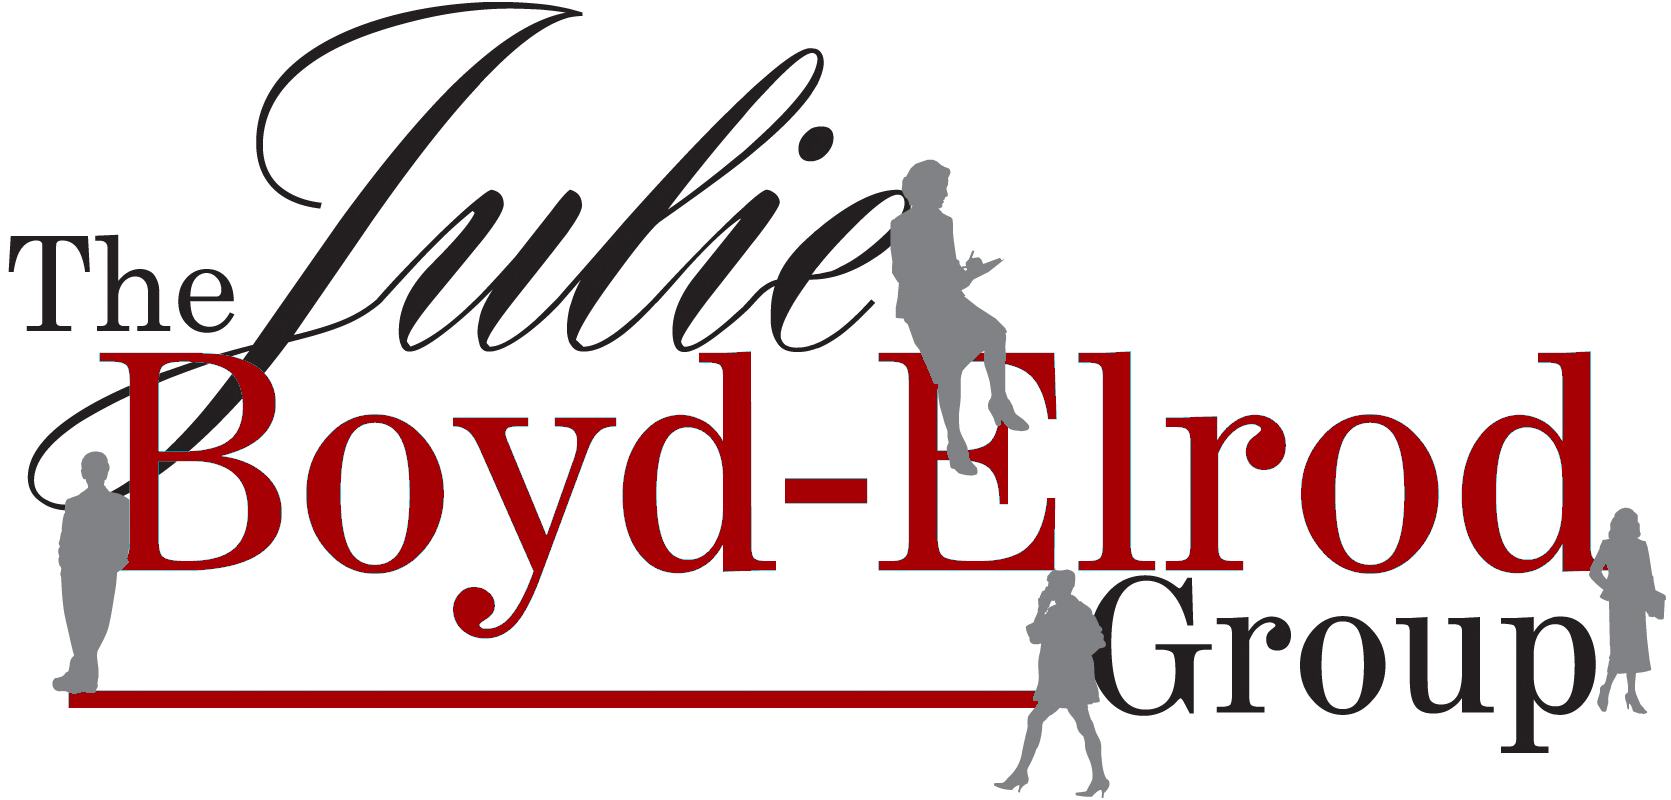 The Julie Boyd-Elrod Group | Real Estate Agents in 59 Alafaya Woods Blvd. - Oviedo FL - Reviews - Photos - Phone Number